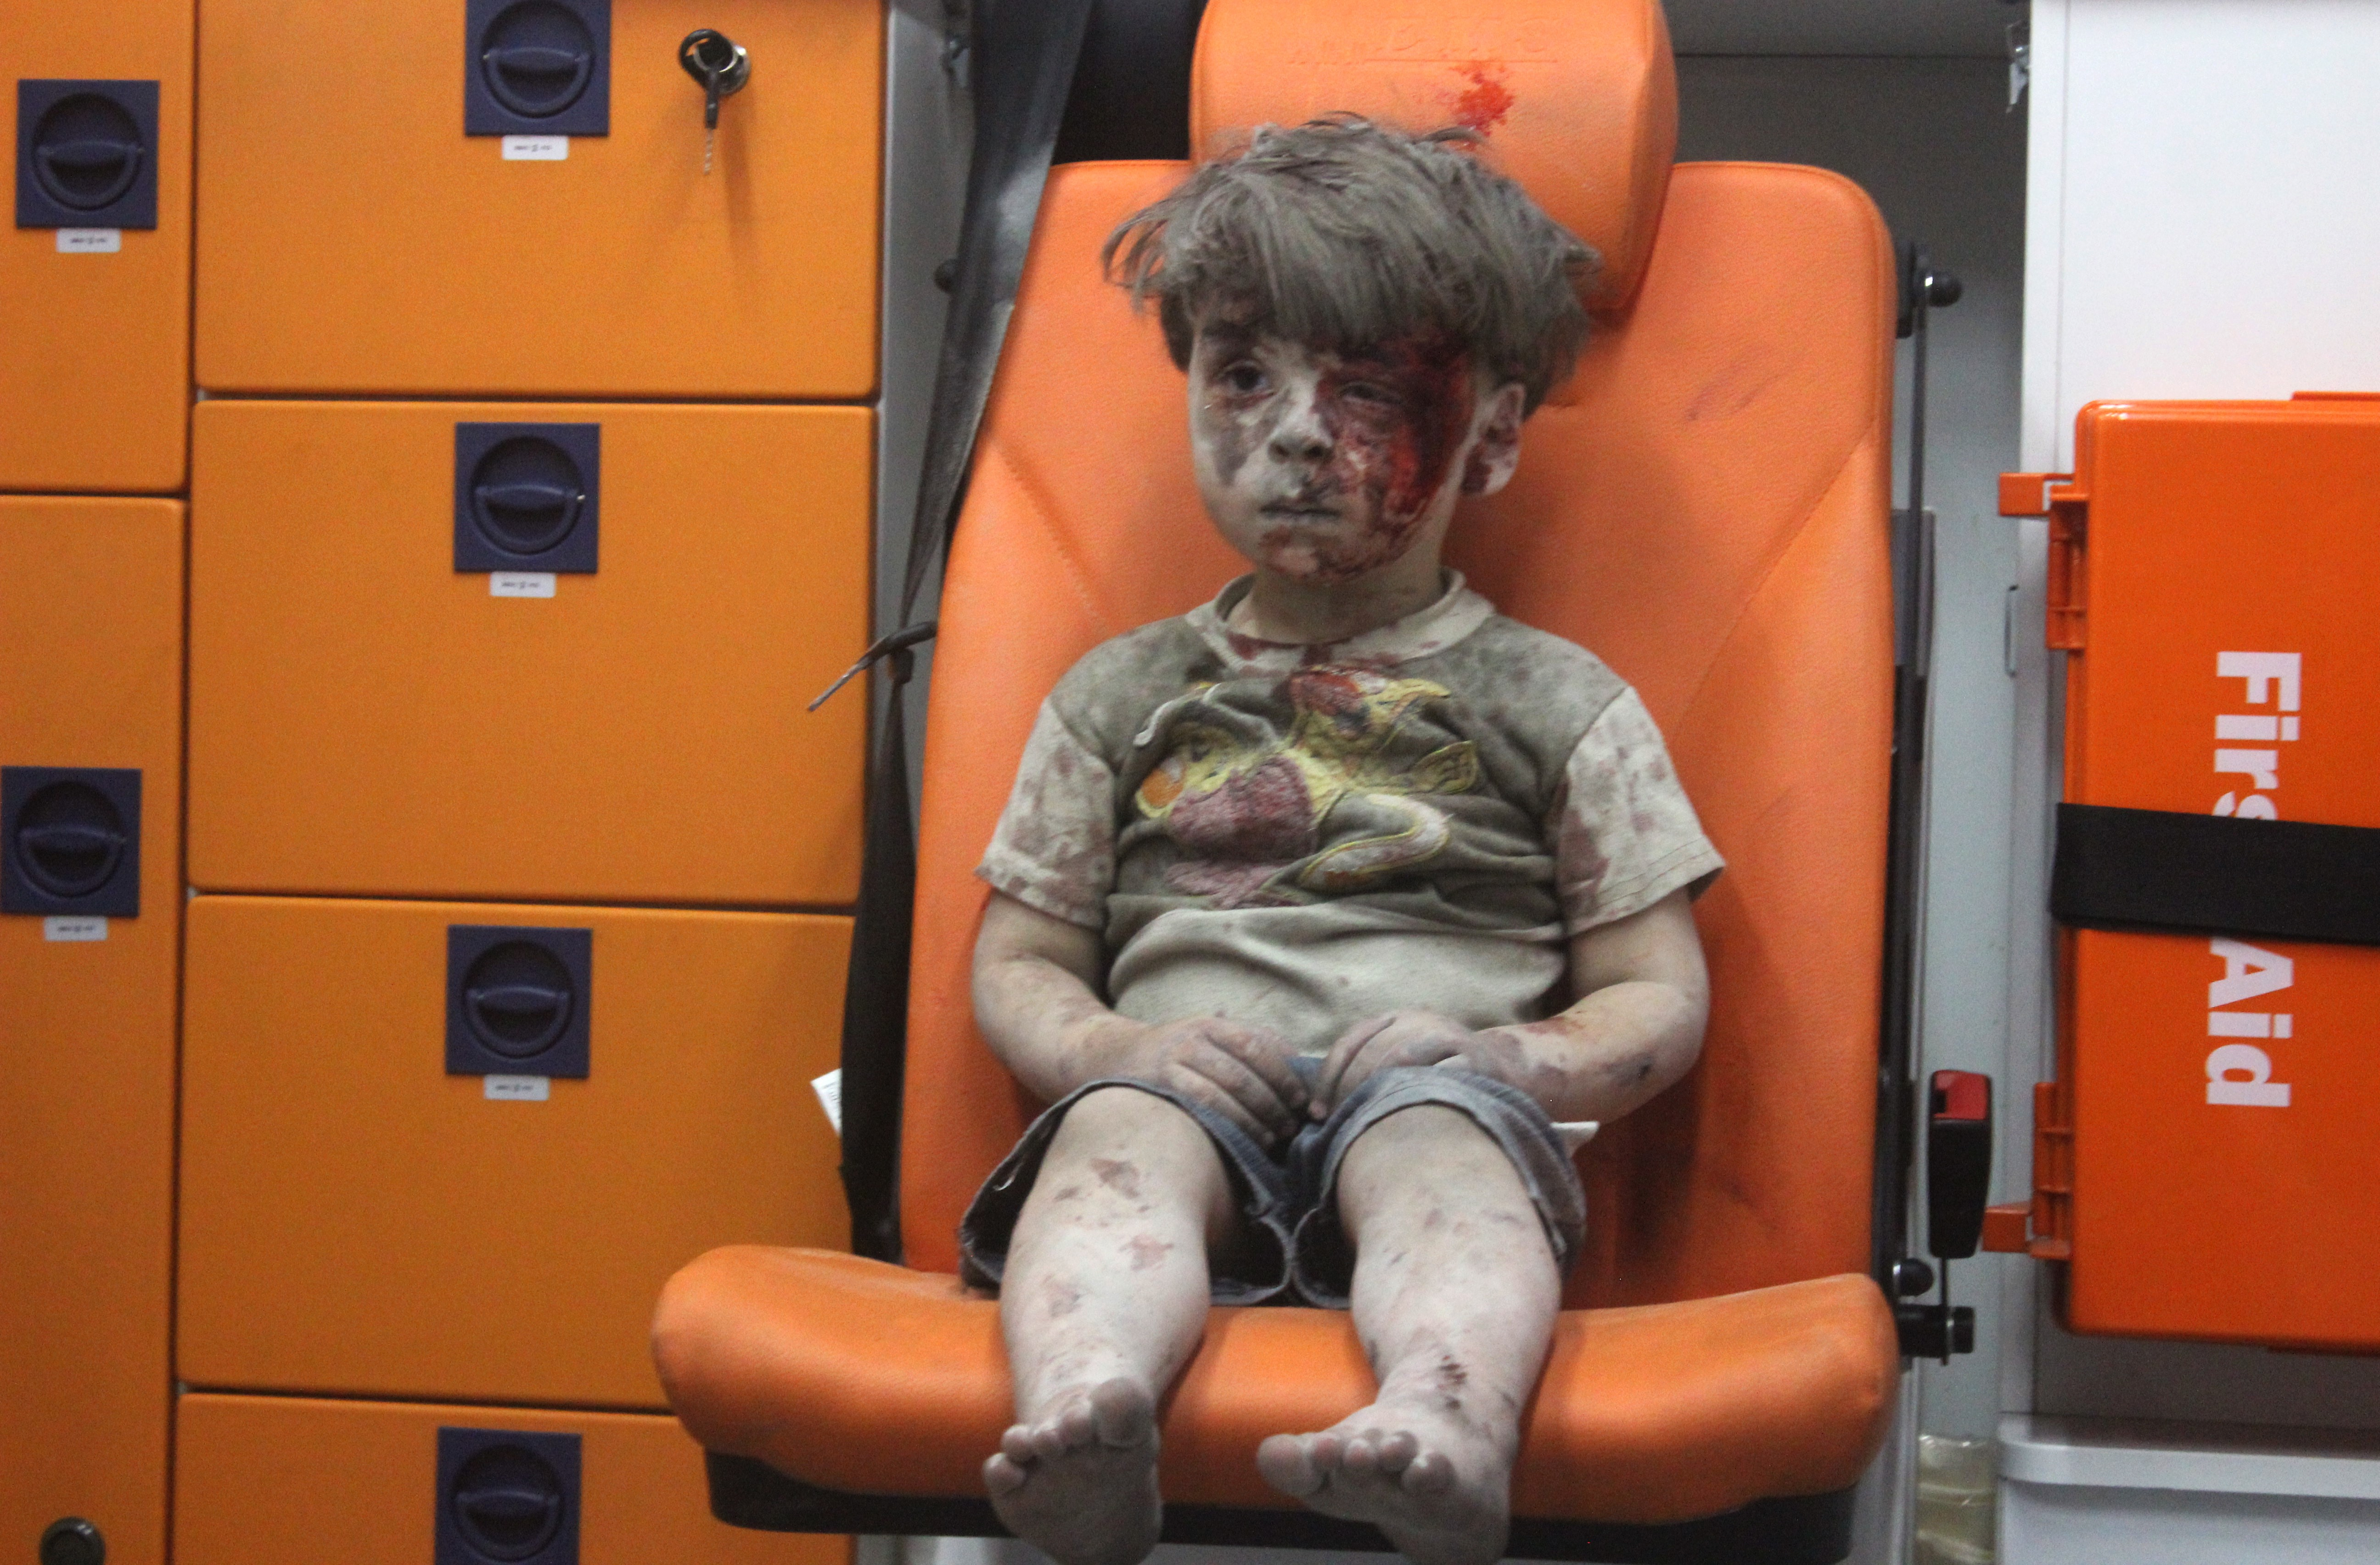 Five-year-old wounded Syrian boy Omran Daqneesh sits alone in the back of the ambulance after he sustained injuries during an airstrike targeting the Qaterji neighborhood of Aleppo on Aug. 17, 2016.